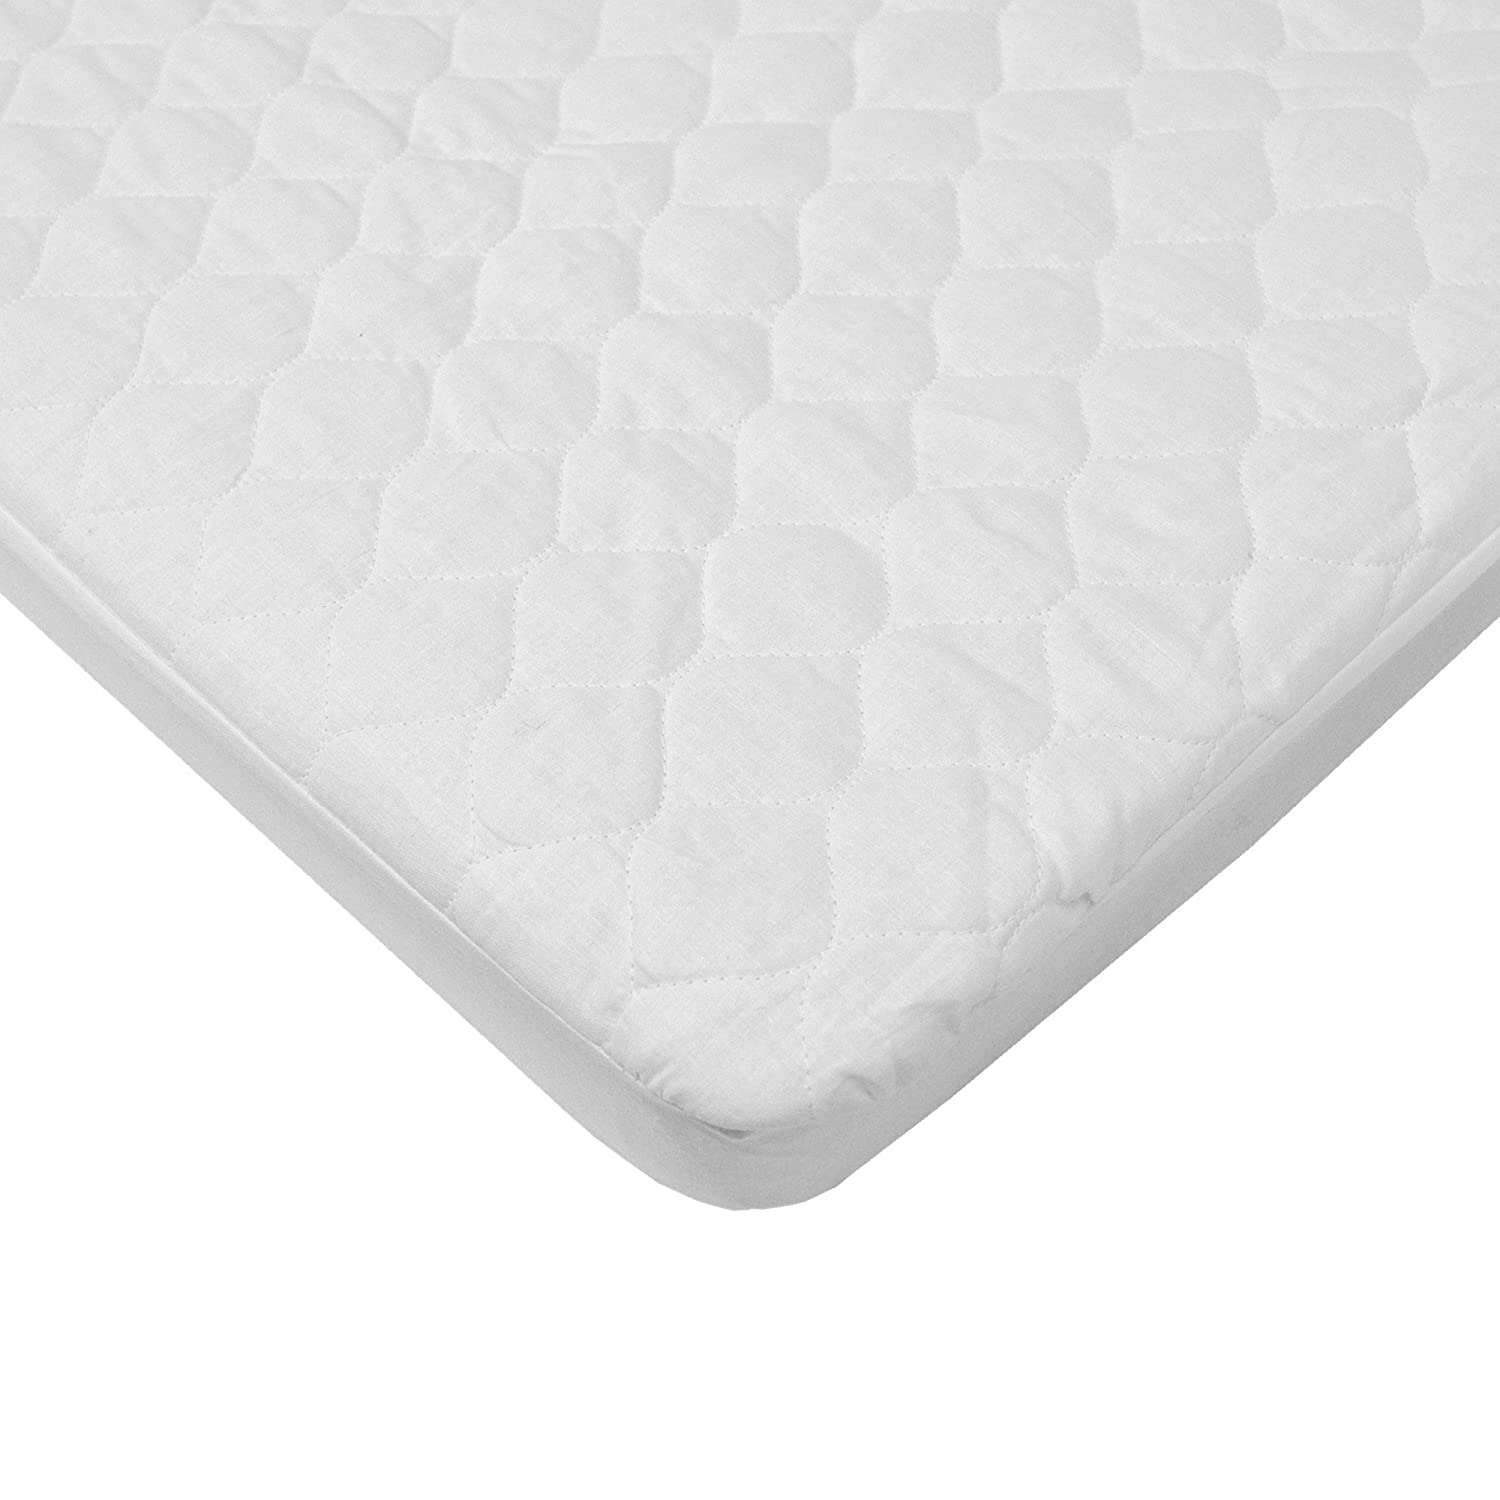 Amazon.com : American Baby Company Waterproof fitted Quilted Portable/Mini  Crib Mattress Pad Cover : Pack And Play : Baby - Amazon.com : American Baby Company Waterproof Fitted Quilted